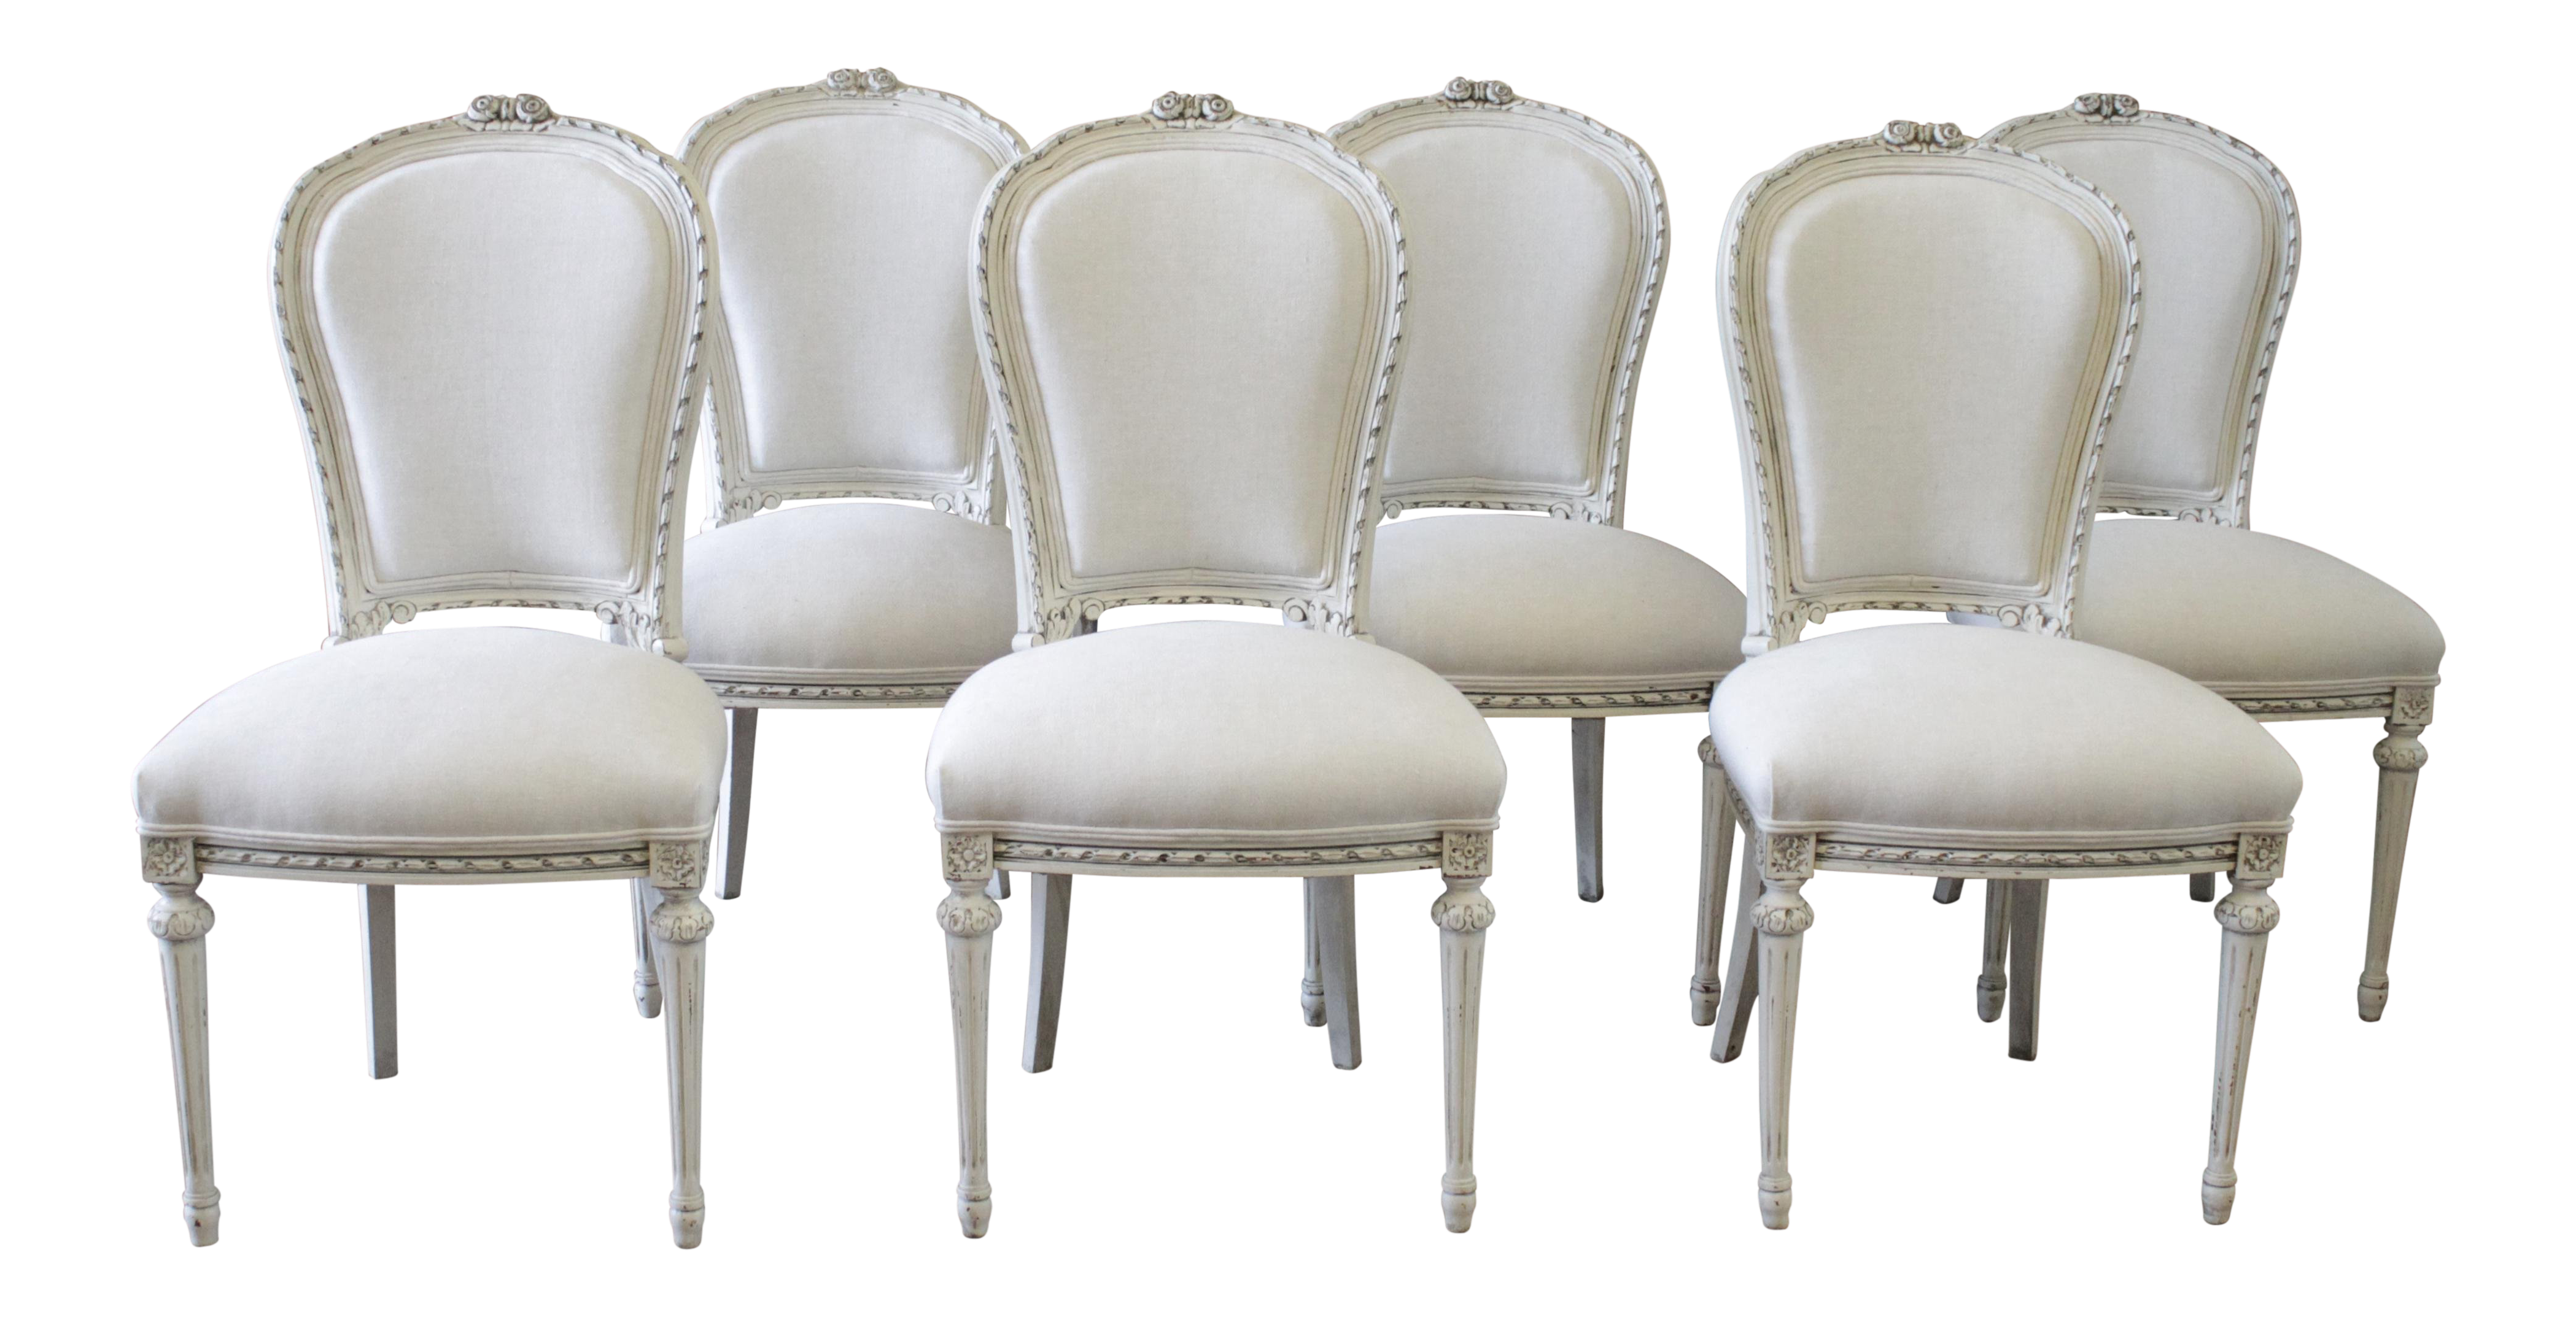 20th Century Louis Xvi Style Painted With Linen Upholstery Dining